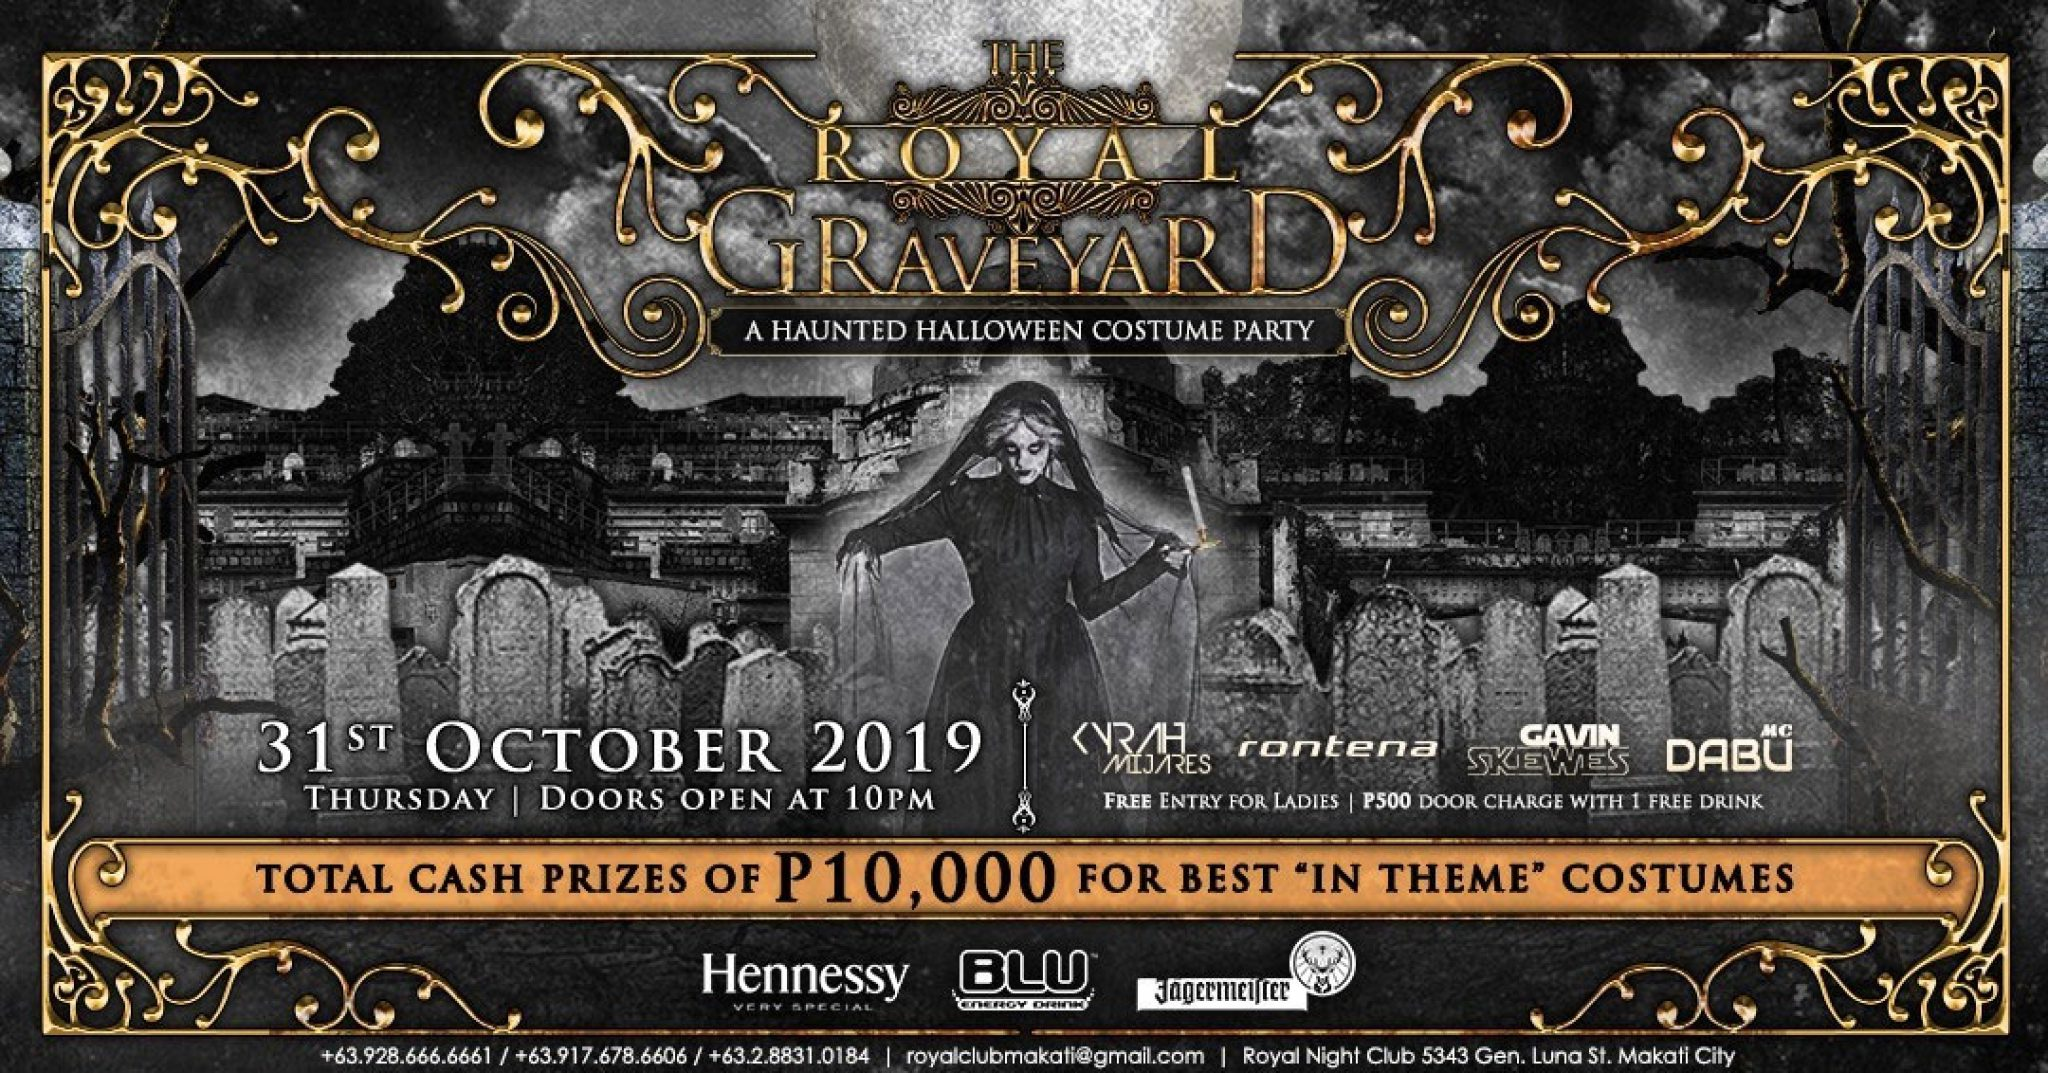 The Royal Graveyard Halloween Party